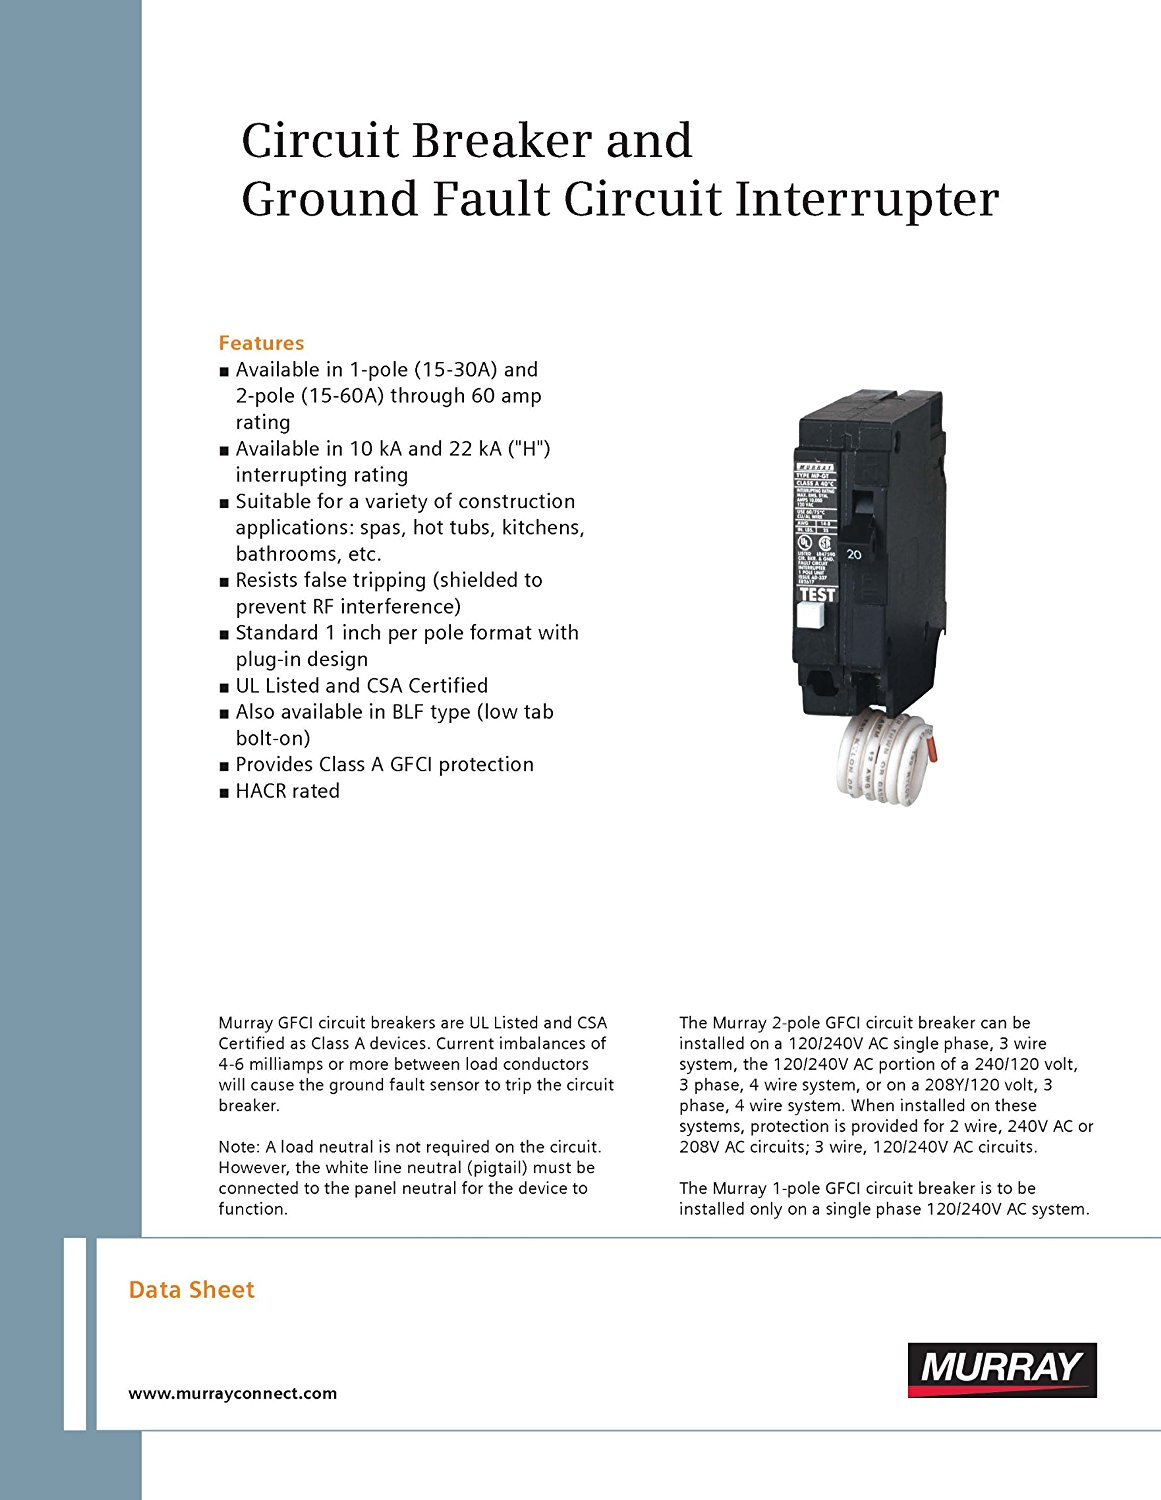 Mp250gf 50 Amp 2 Pole 240 Volt Ground Fault Circuit Interrupter How To Test Gfci By Murray